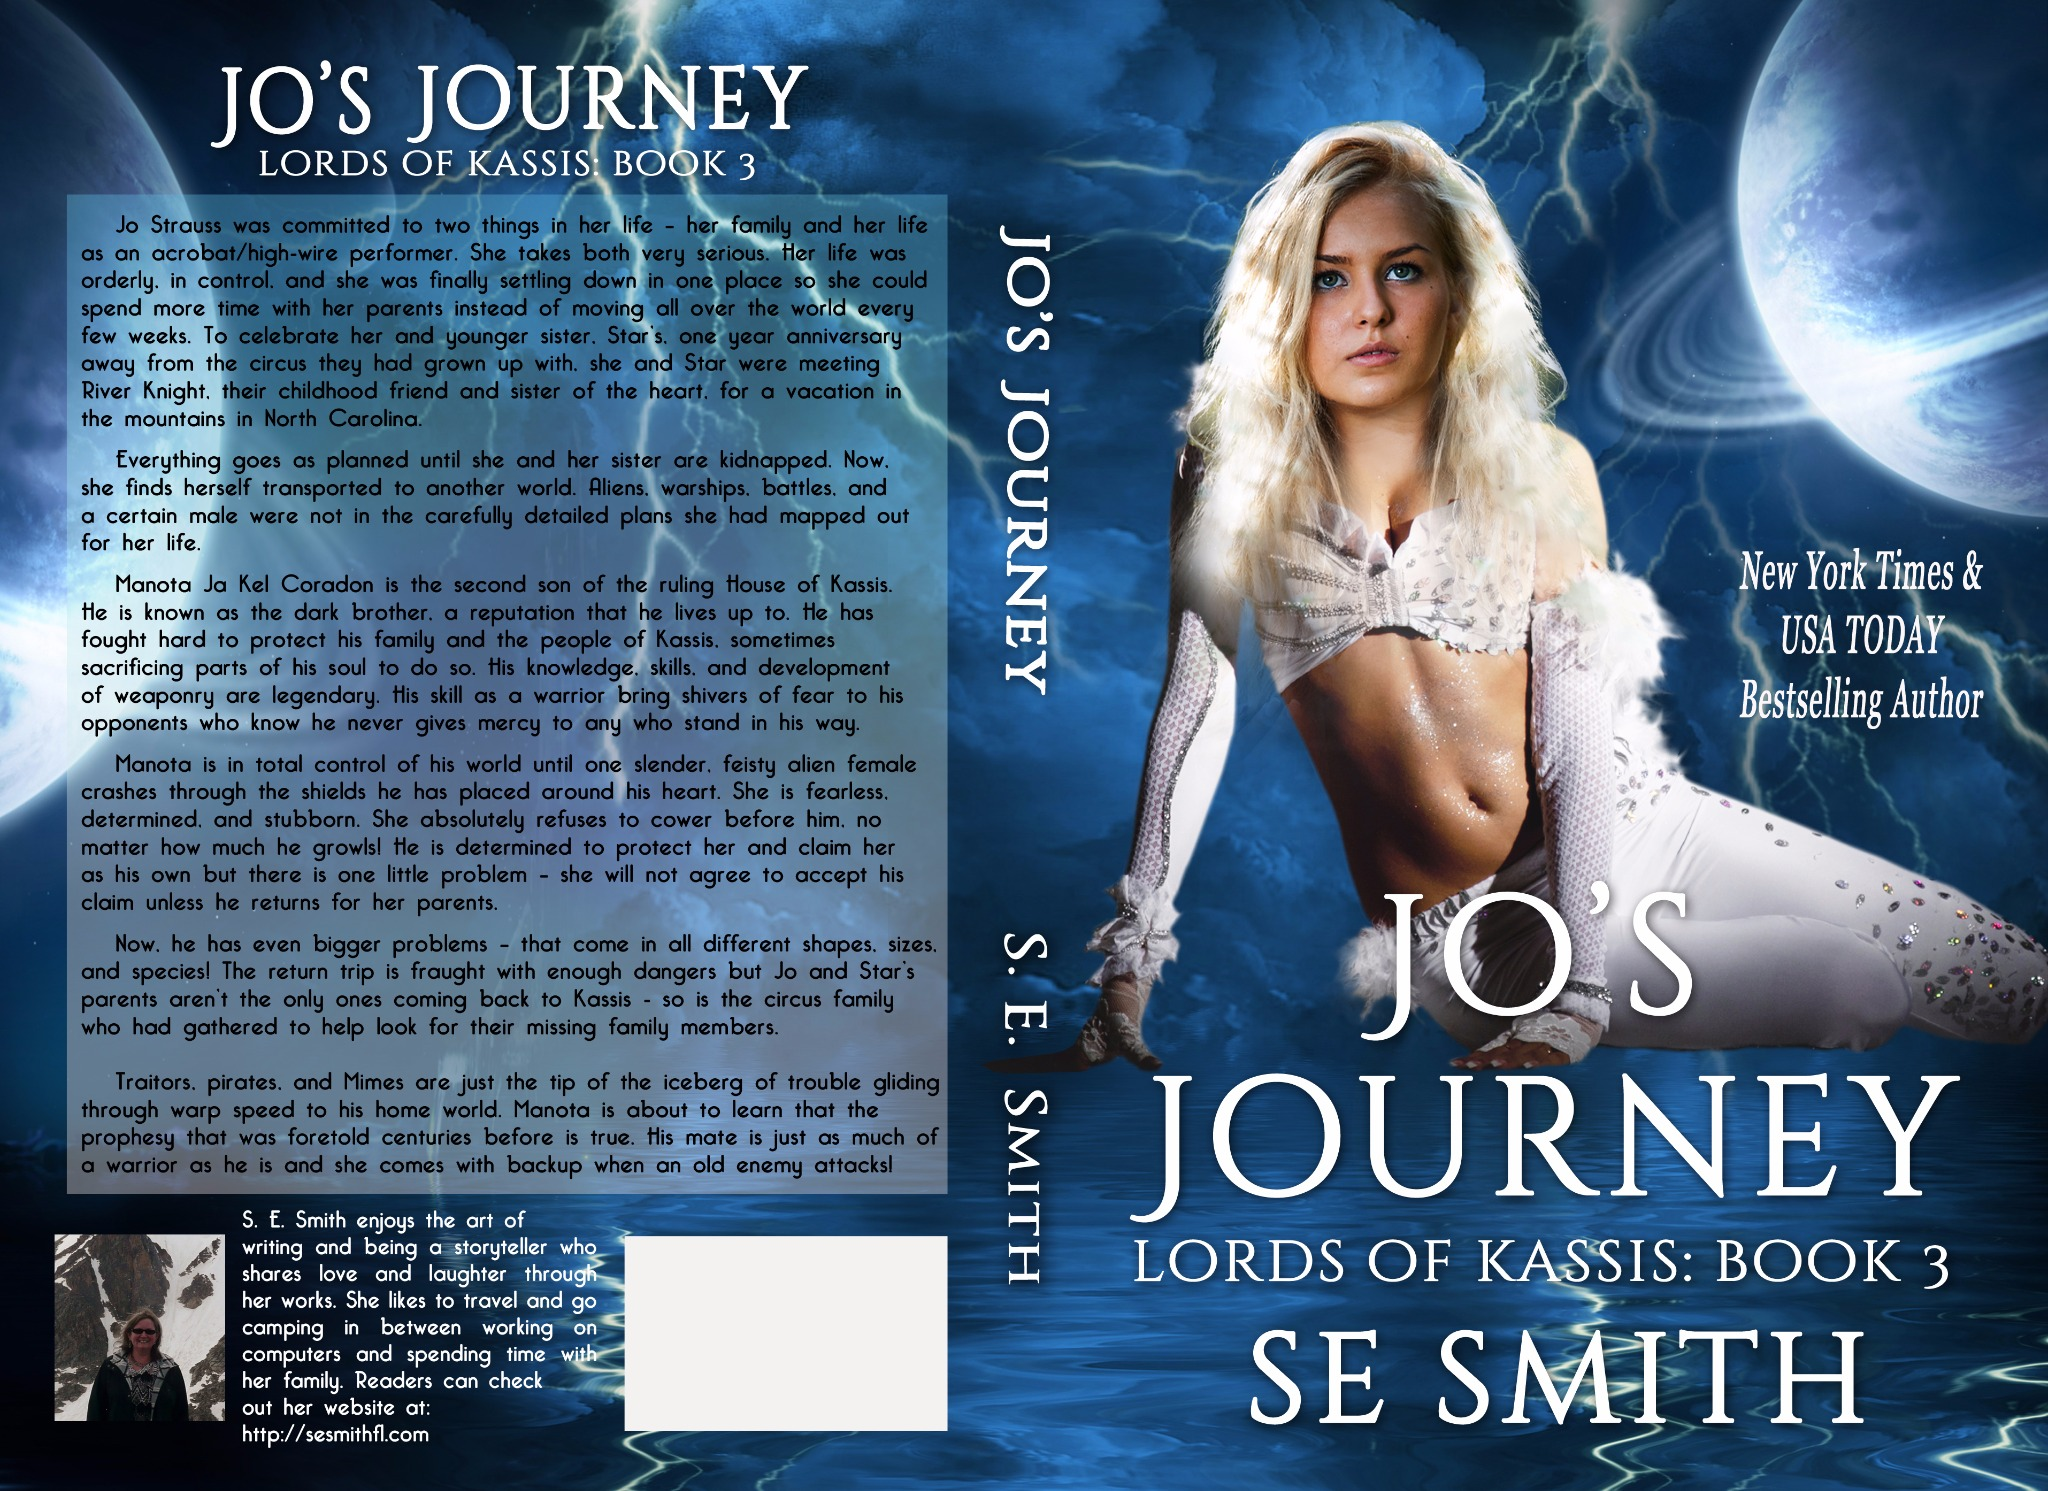 Jo's Journey: Lords of Kassis Book 3 (Paperback)